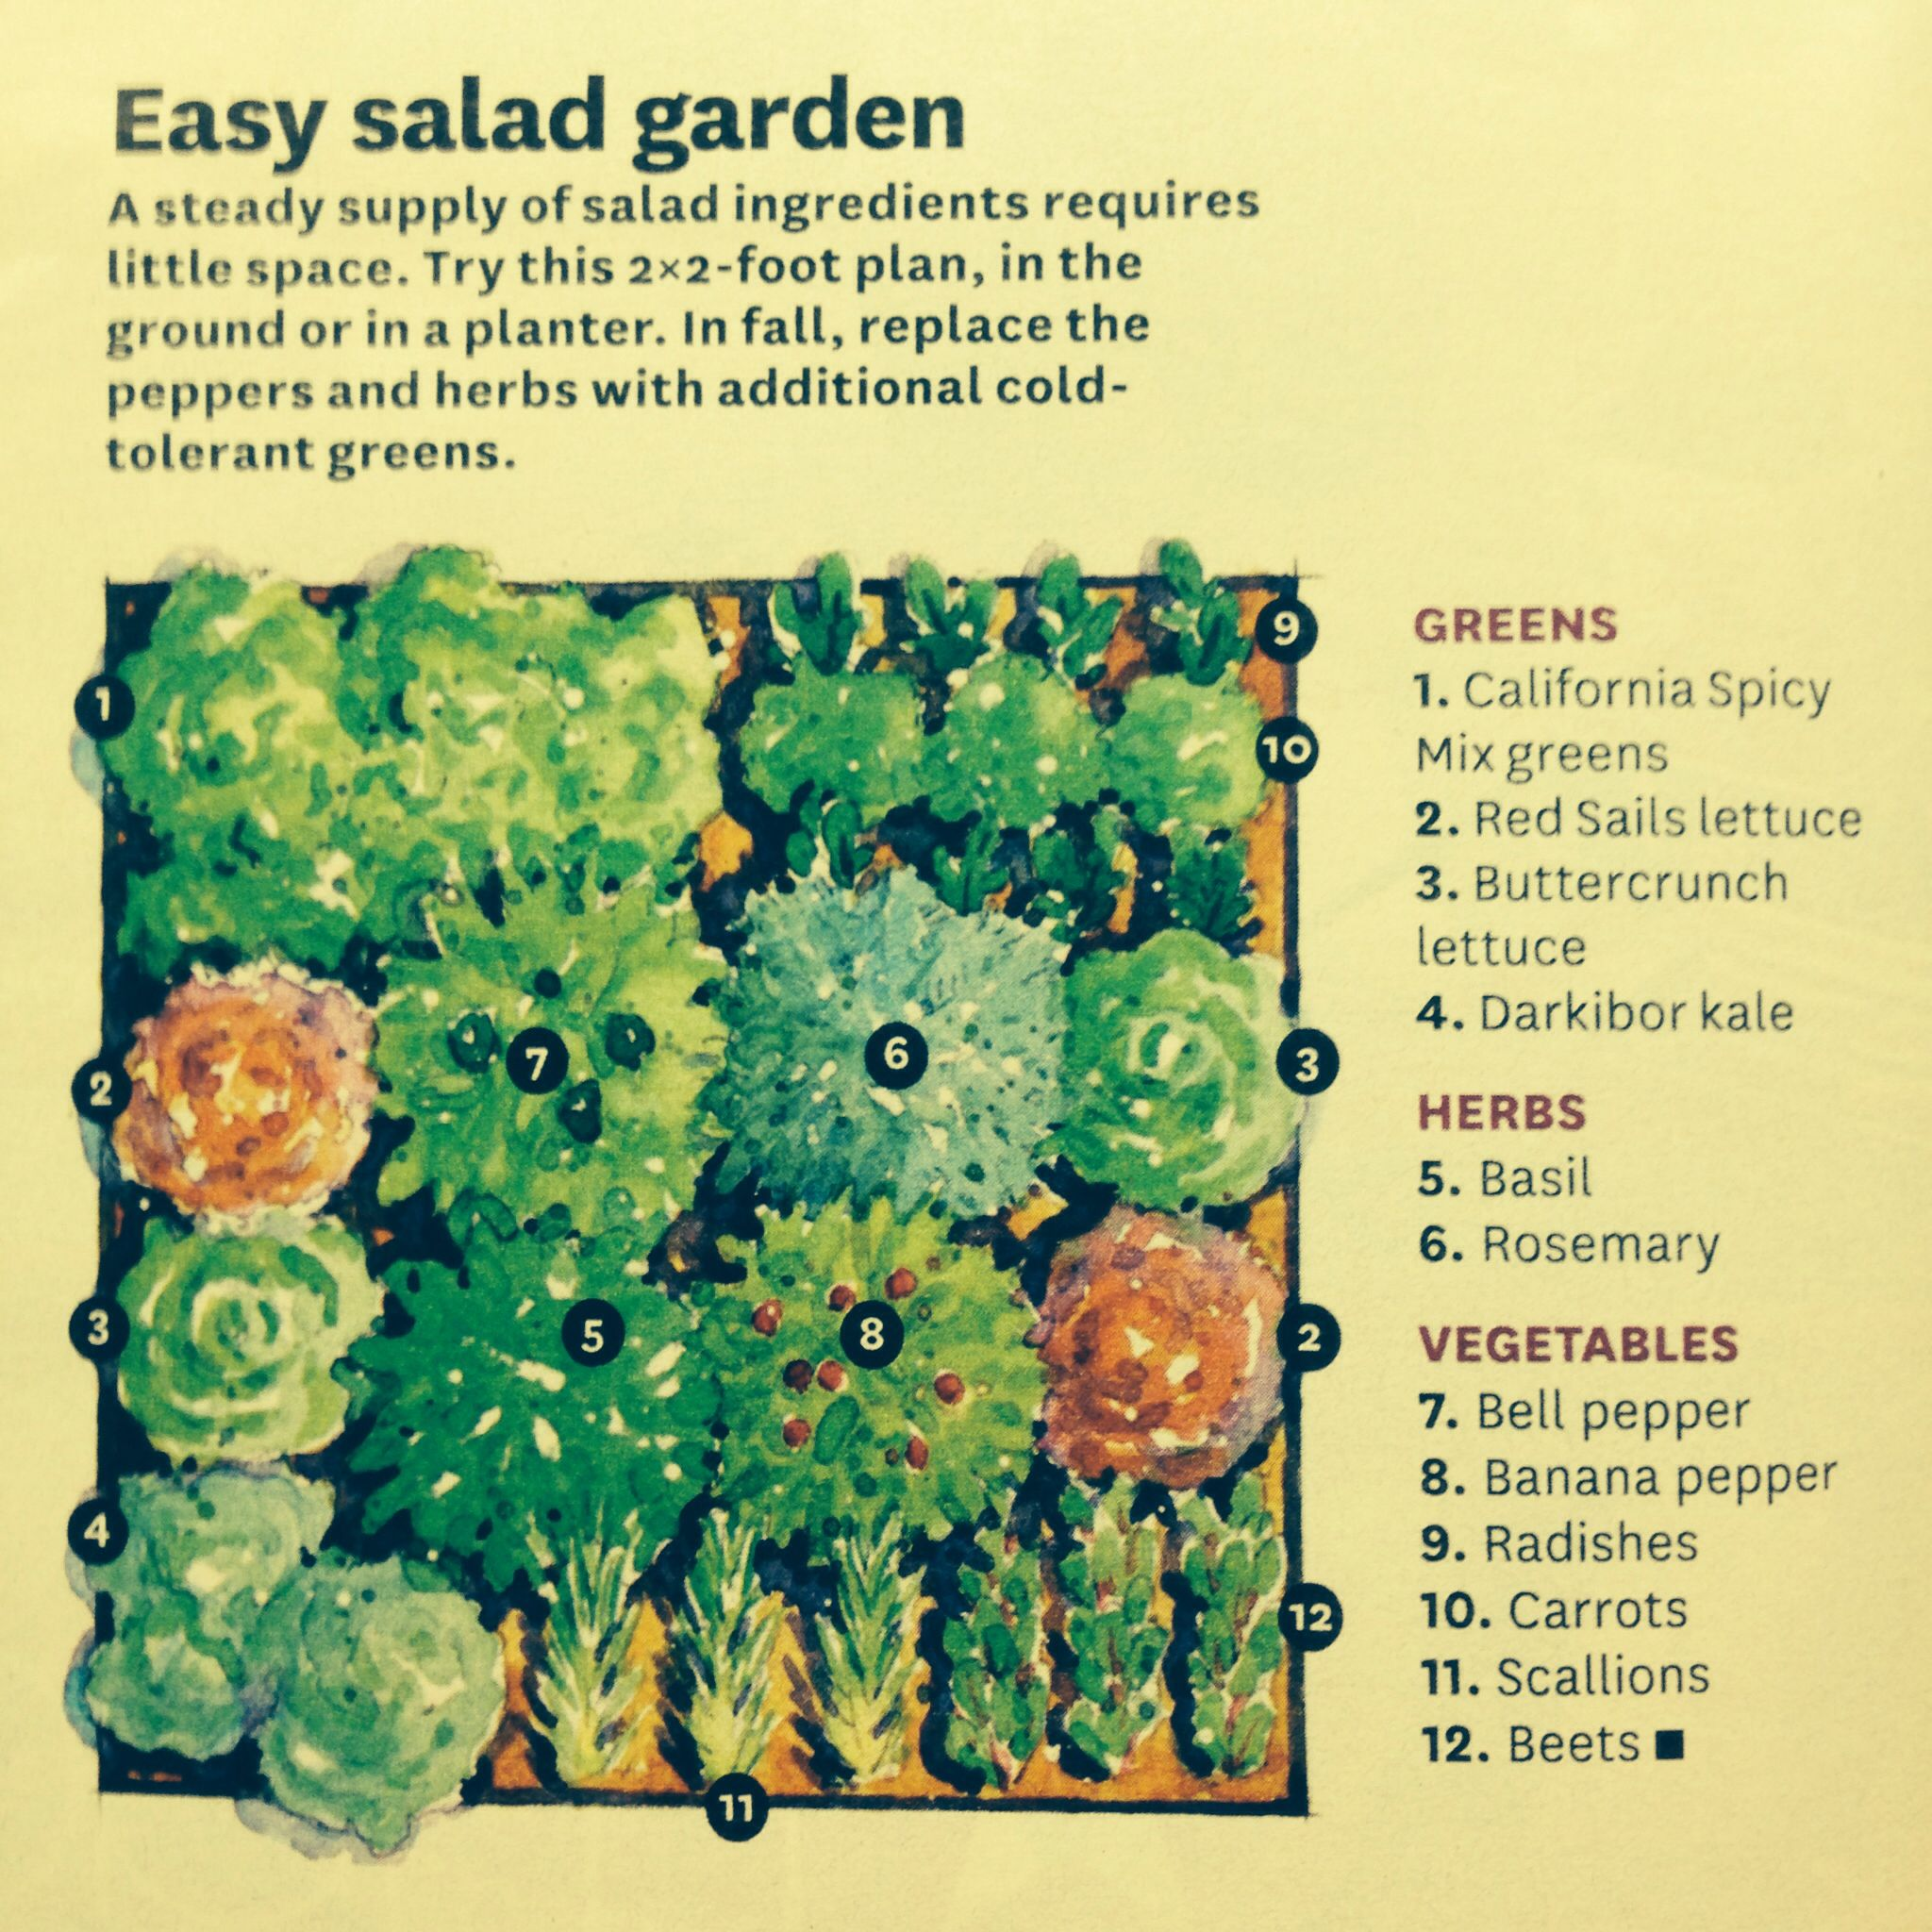 Easy salad garden from a 2 x plan. Build the planter into a freestanding  island to make it waist height! Better Home and Gardens June 2014 Idea.